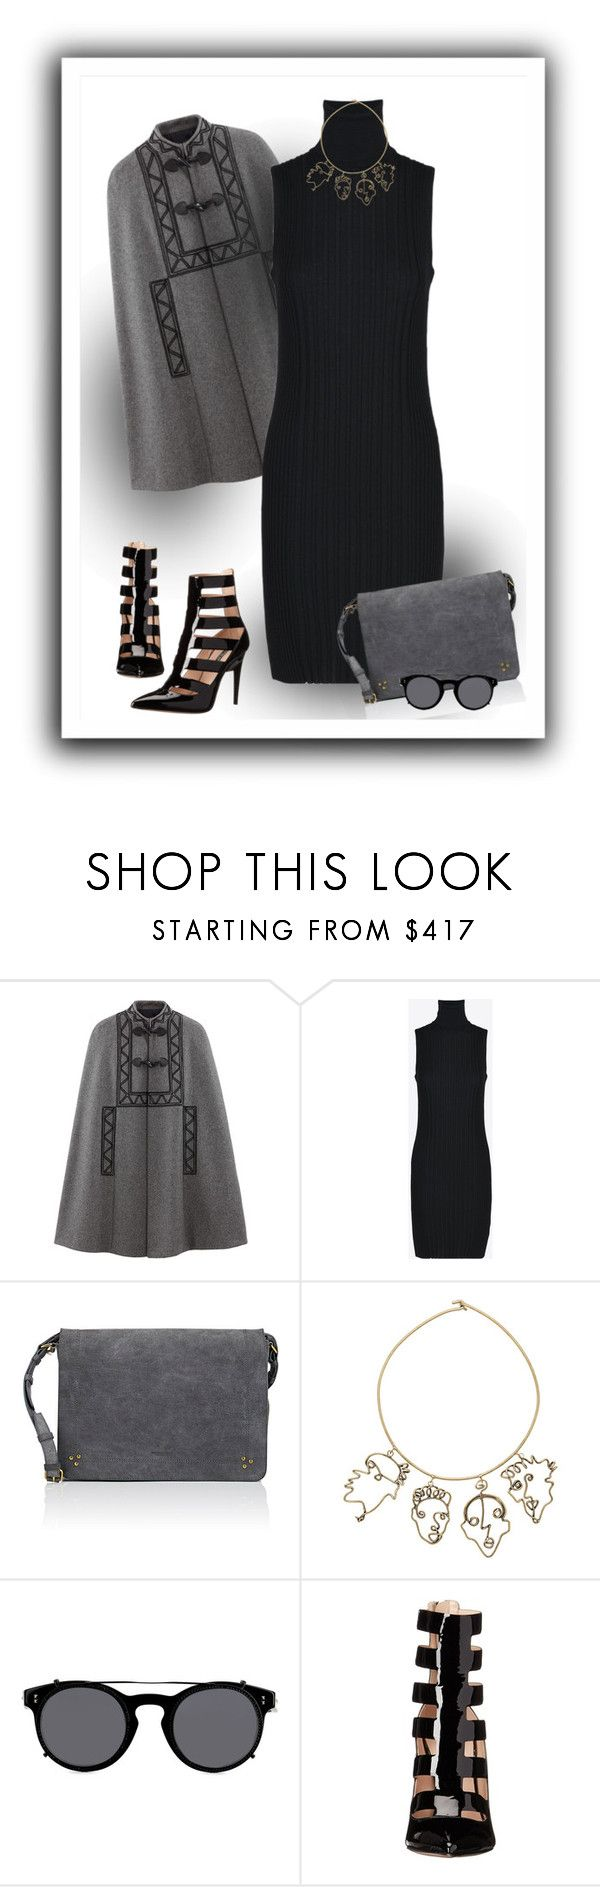 """Grey Soft"" by michelletheaflack ❤ liked on Polyvore featuring Maison Margiela, Jérôme Dreyfuss, Rosie Assoulin, Valentino, Ruthie Davis, Your, styleinsider and simplebutneverplain"